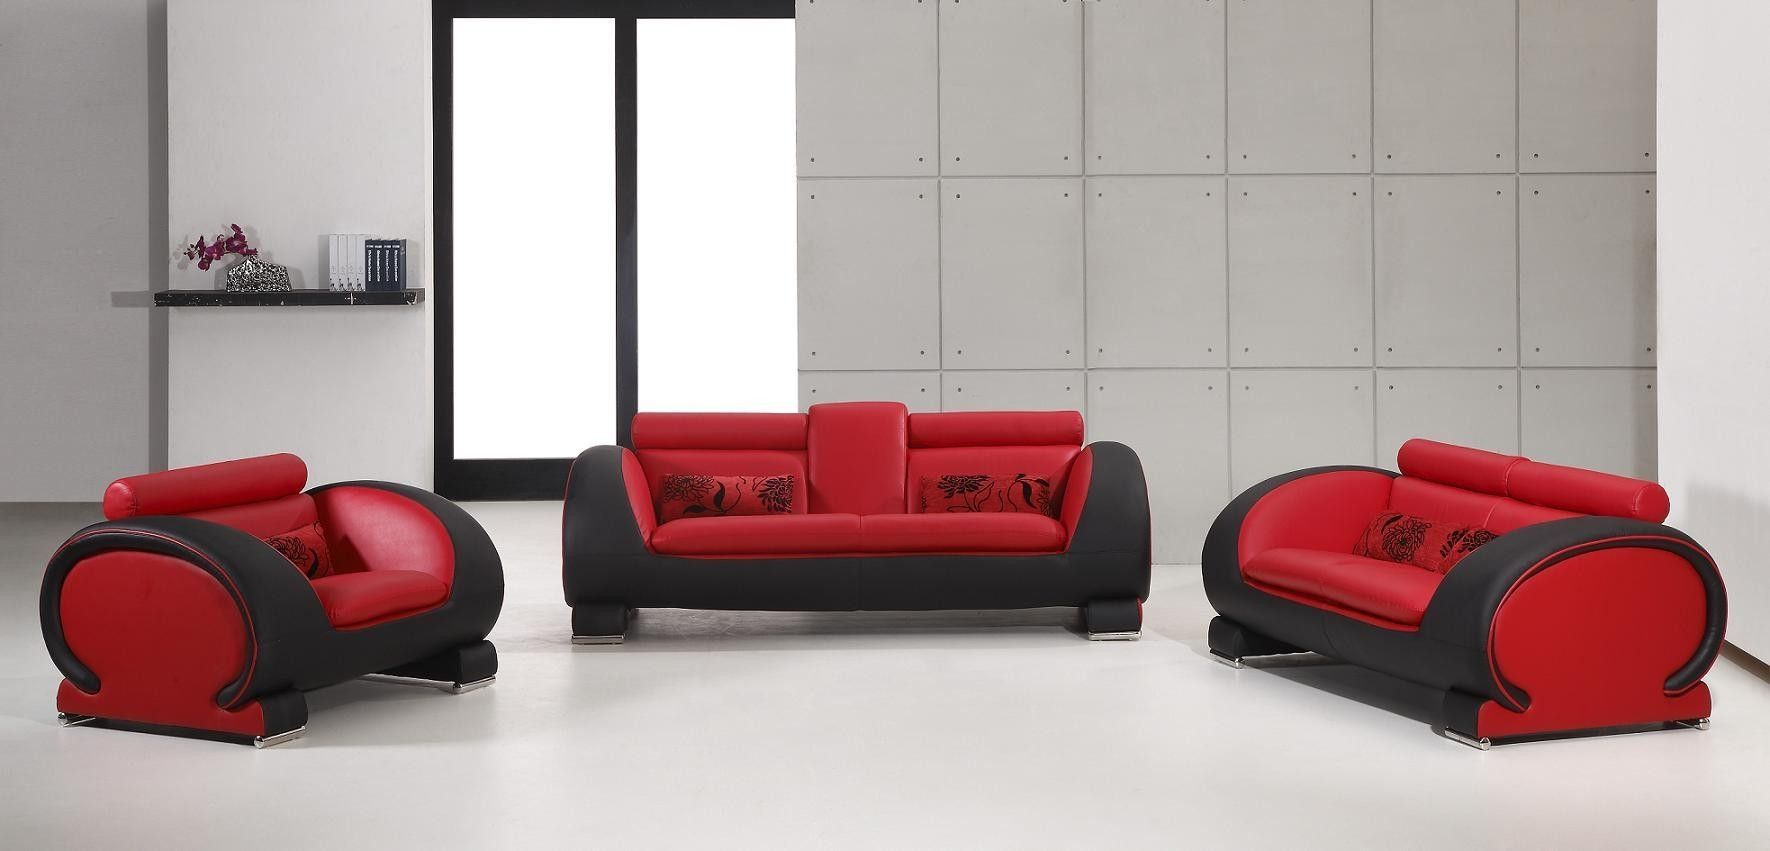 Nova Red And Black Leather Sofa Owning An Italian Symbolizes Sophistication Function Exclusivity This